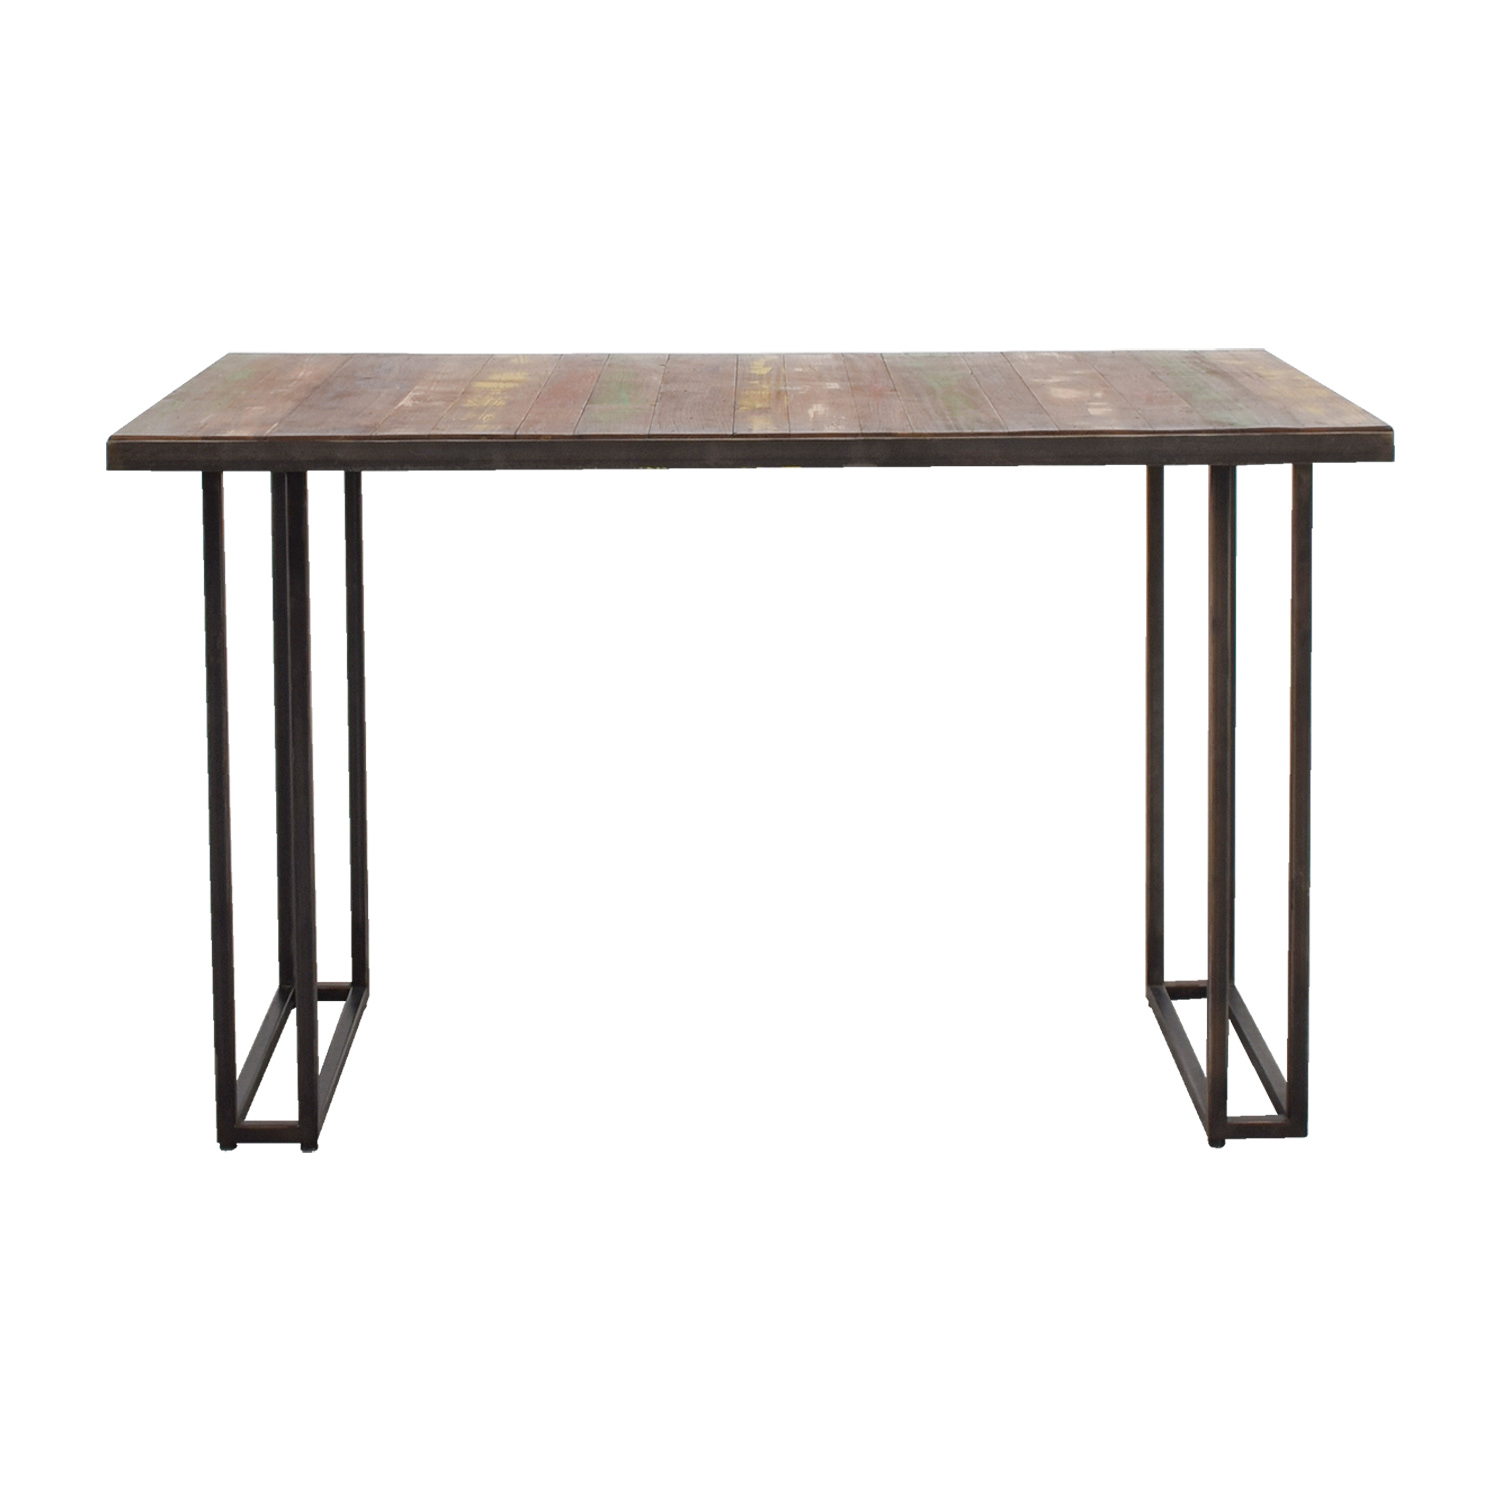 West Elm West Elm Wood & Colored Dining Table used